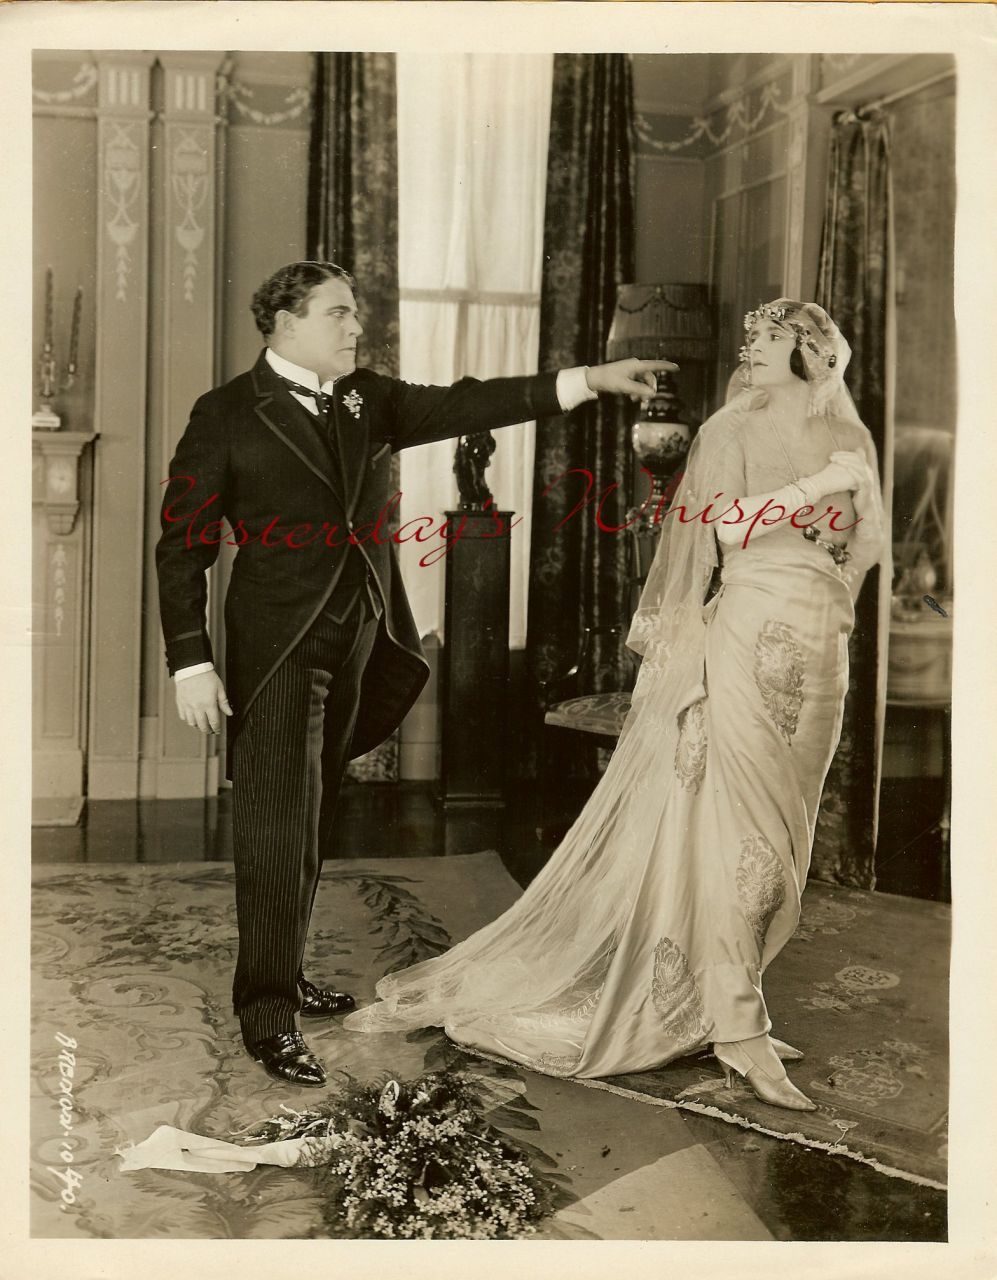 1920s Wiliam Farnum Myrna Bonillas Bride Vintage Photo